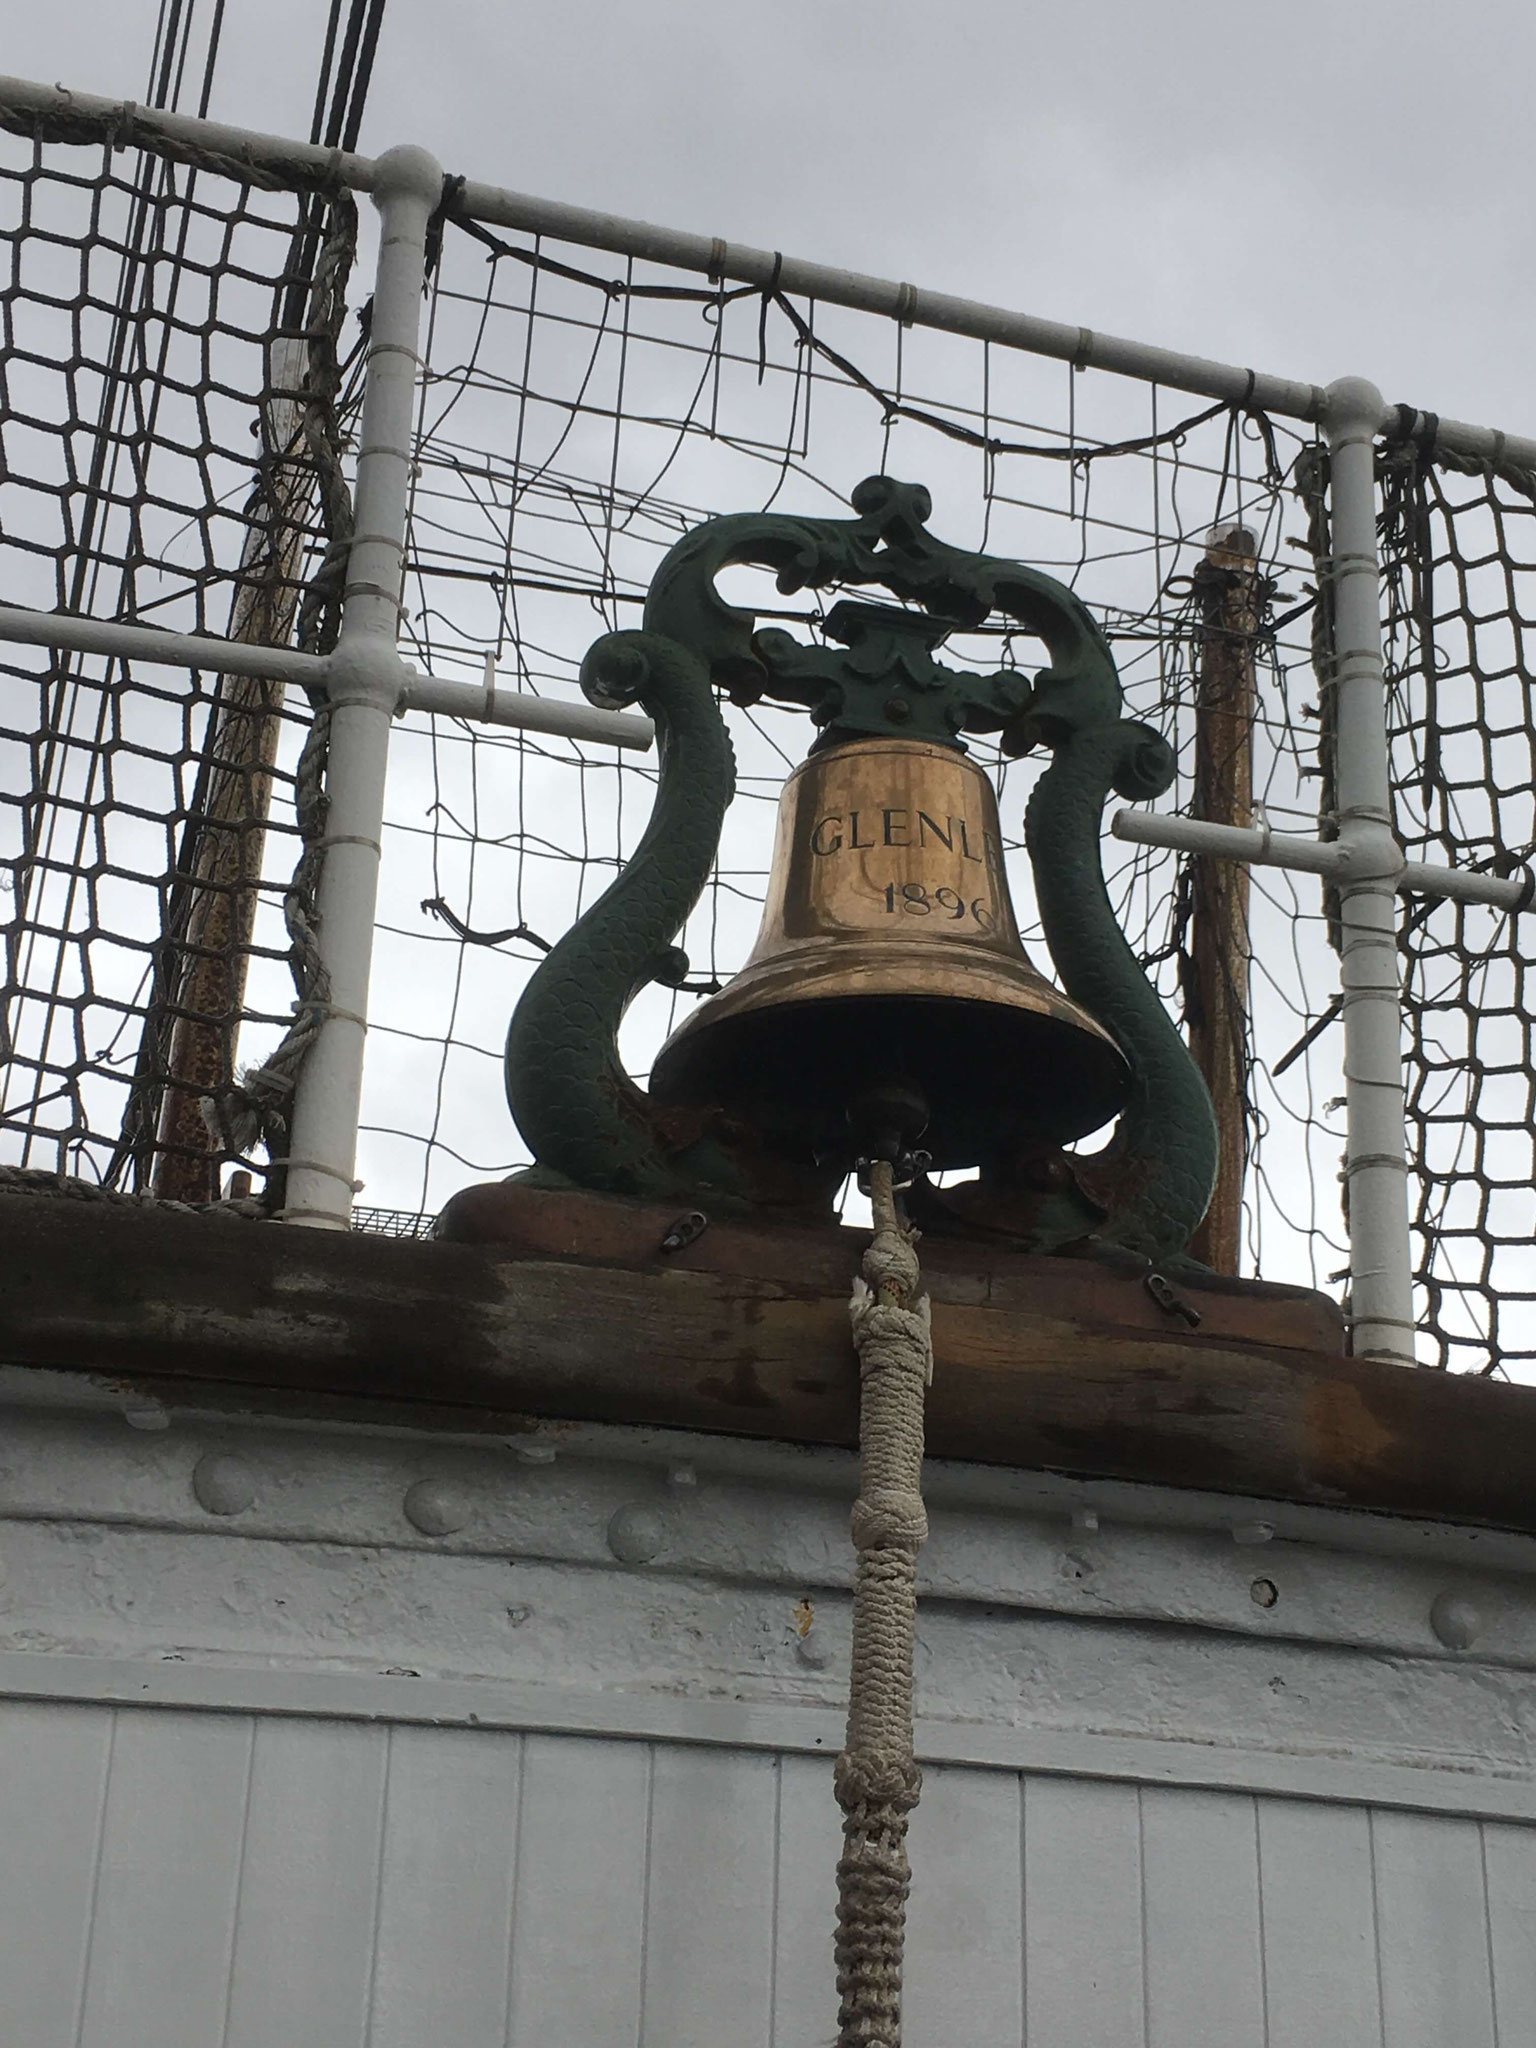 The Glenlee's ship's bell